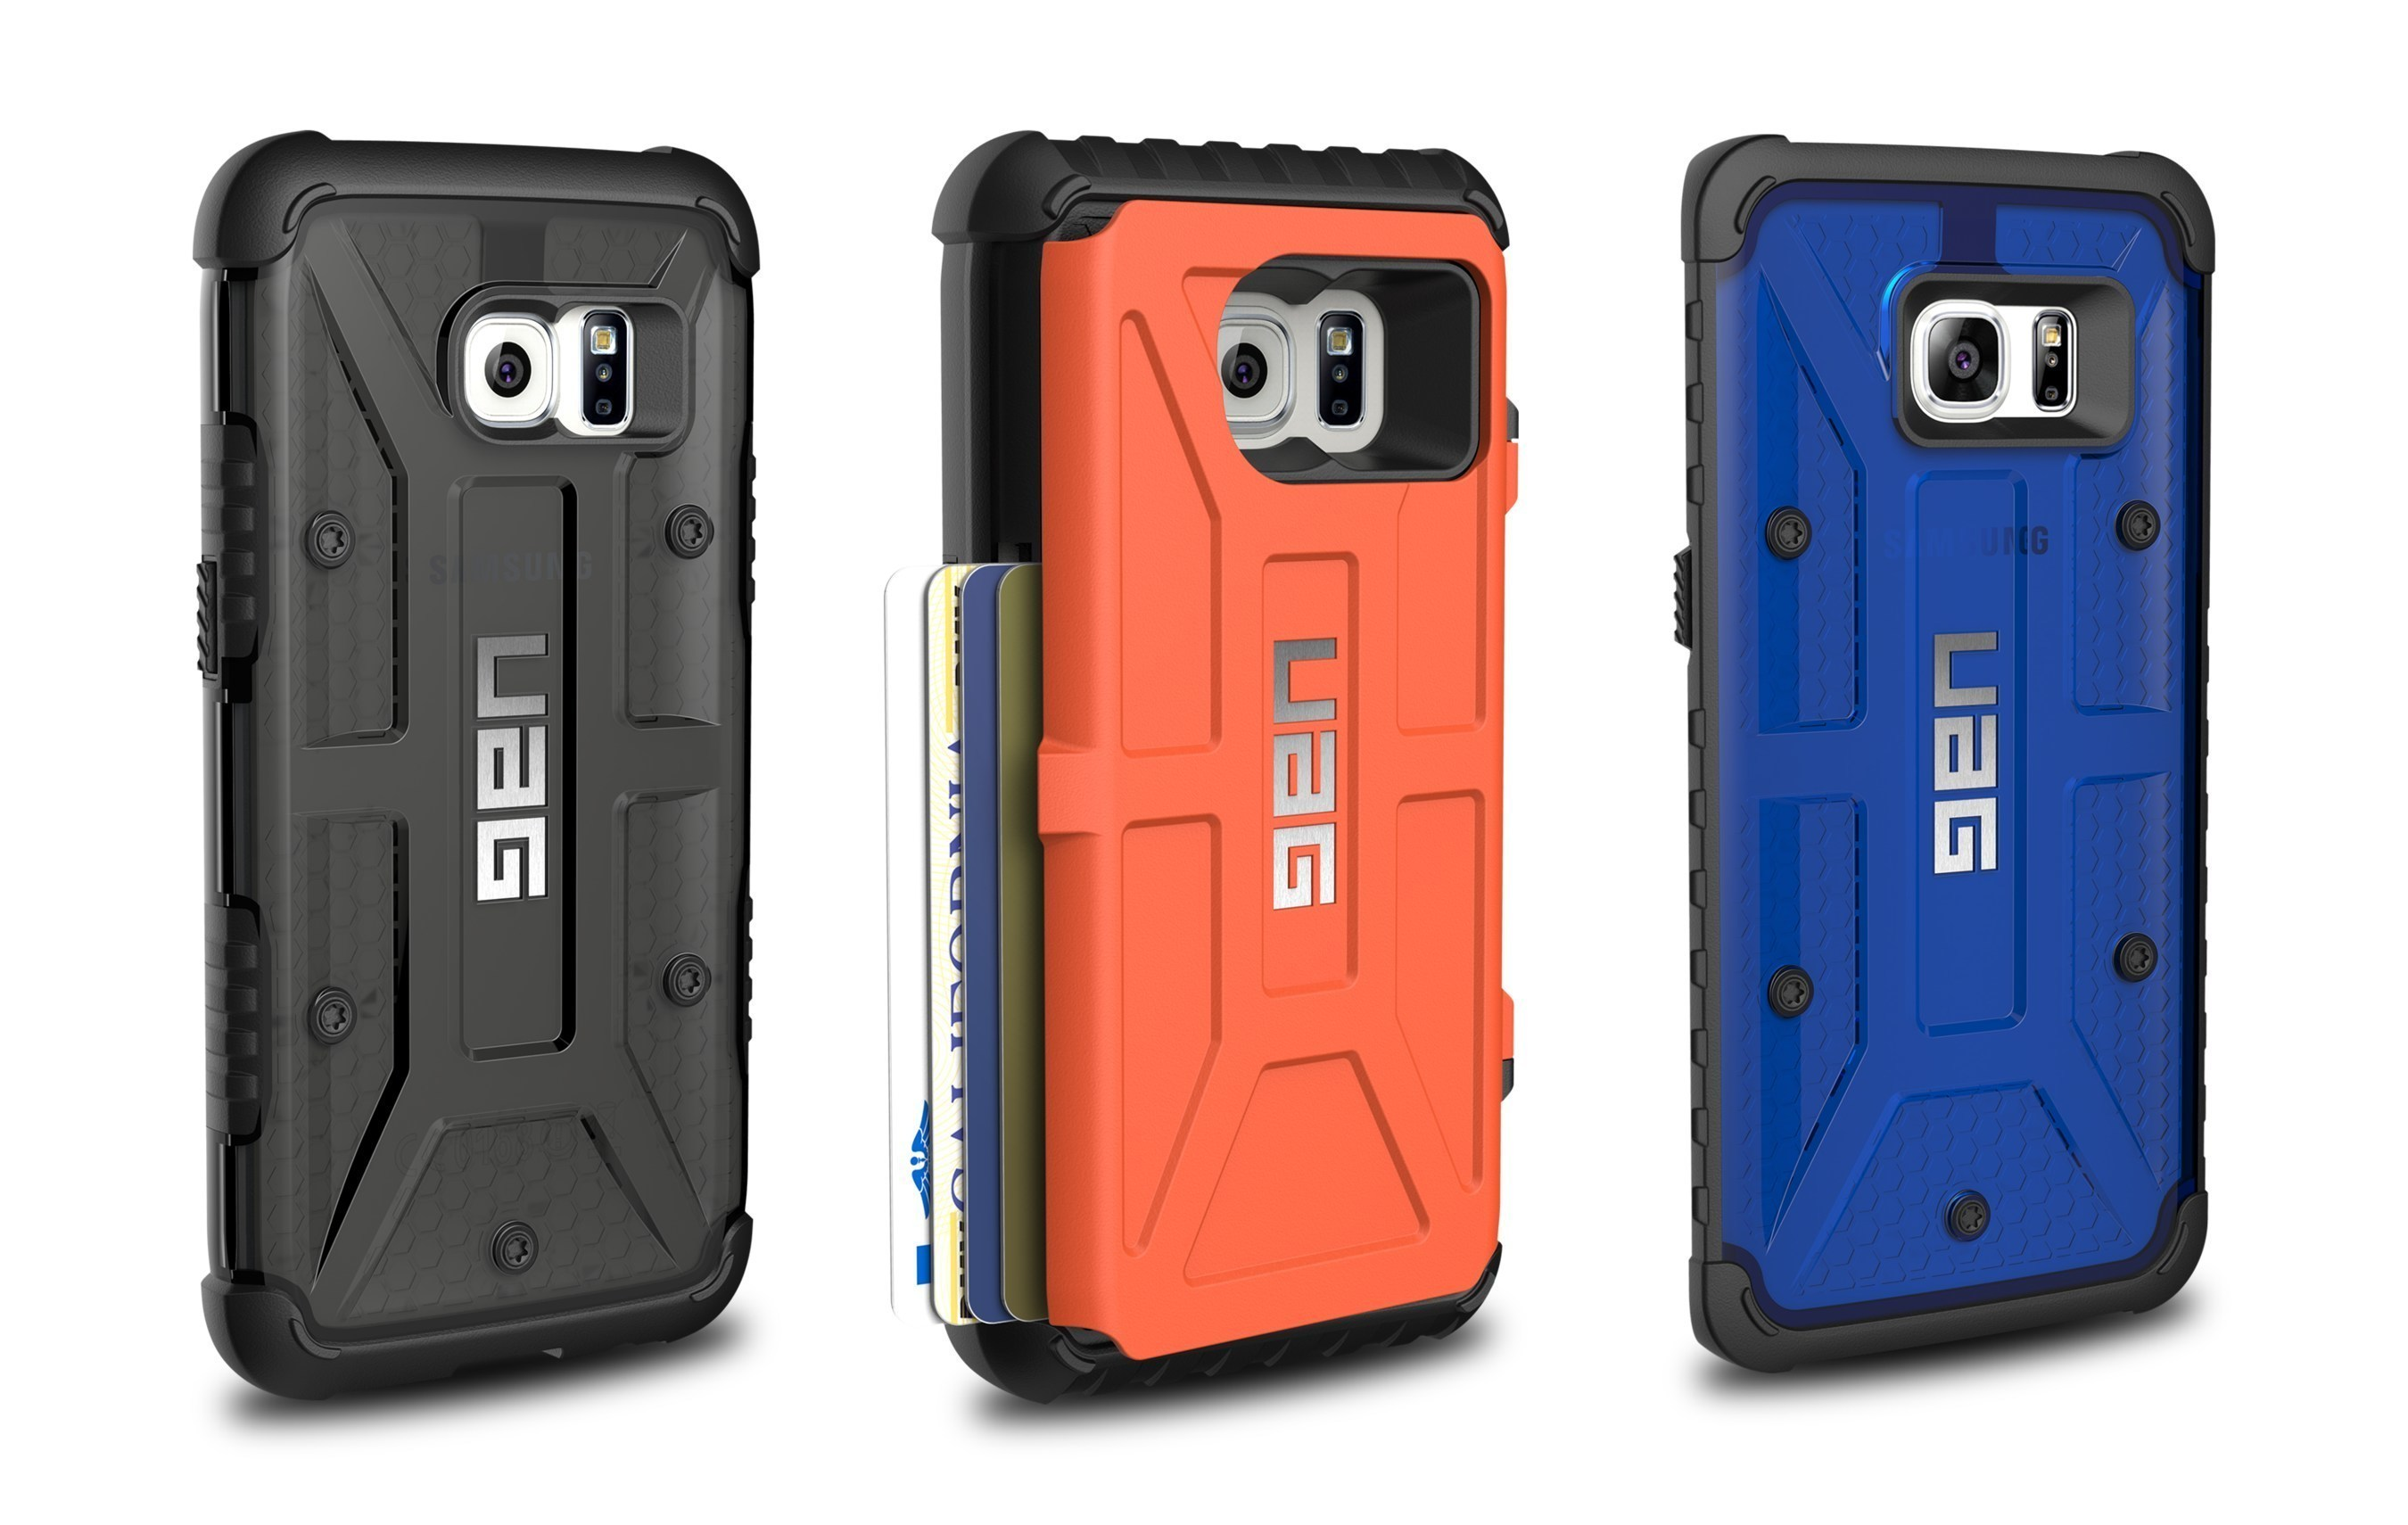 new style 1cb56 761f8 Urban Armor Gear Launches 3 New Cases For Samsung Galaxy S7 Series